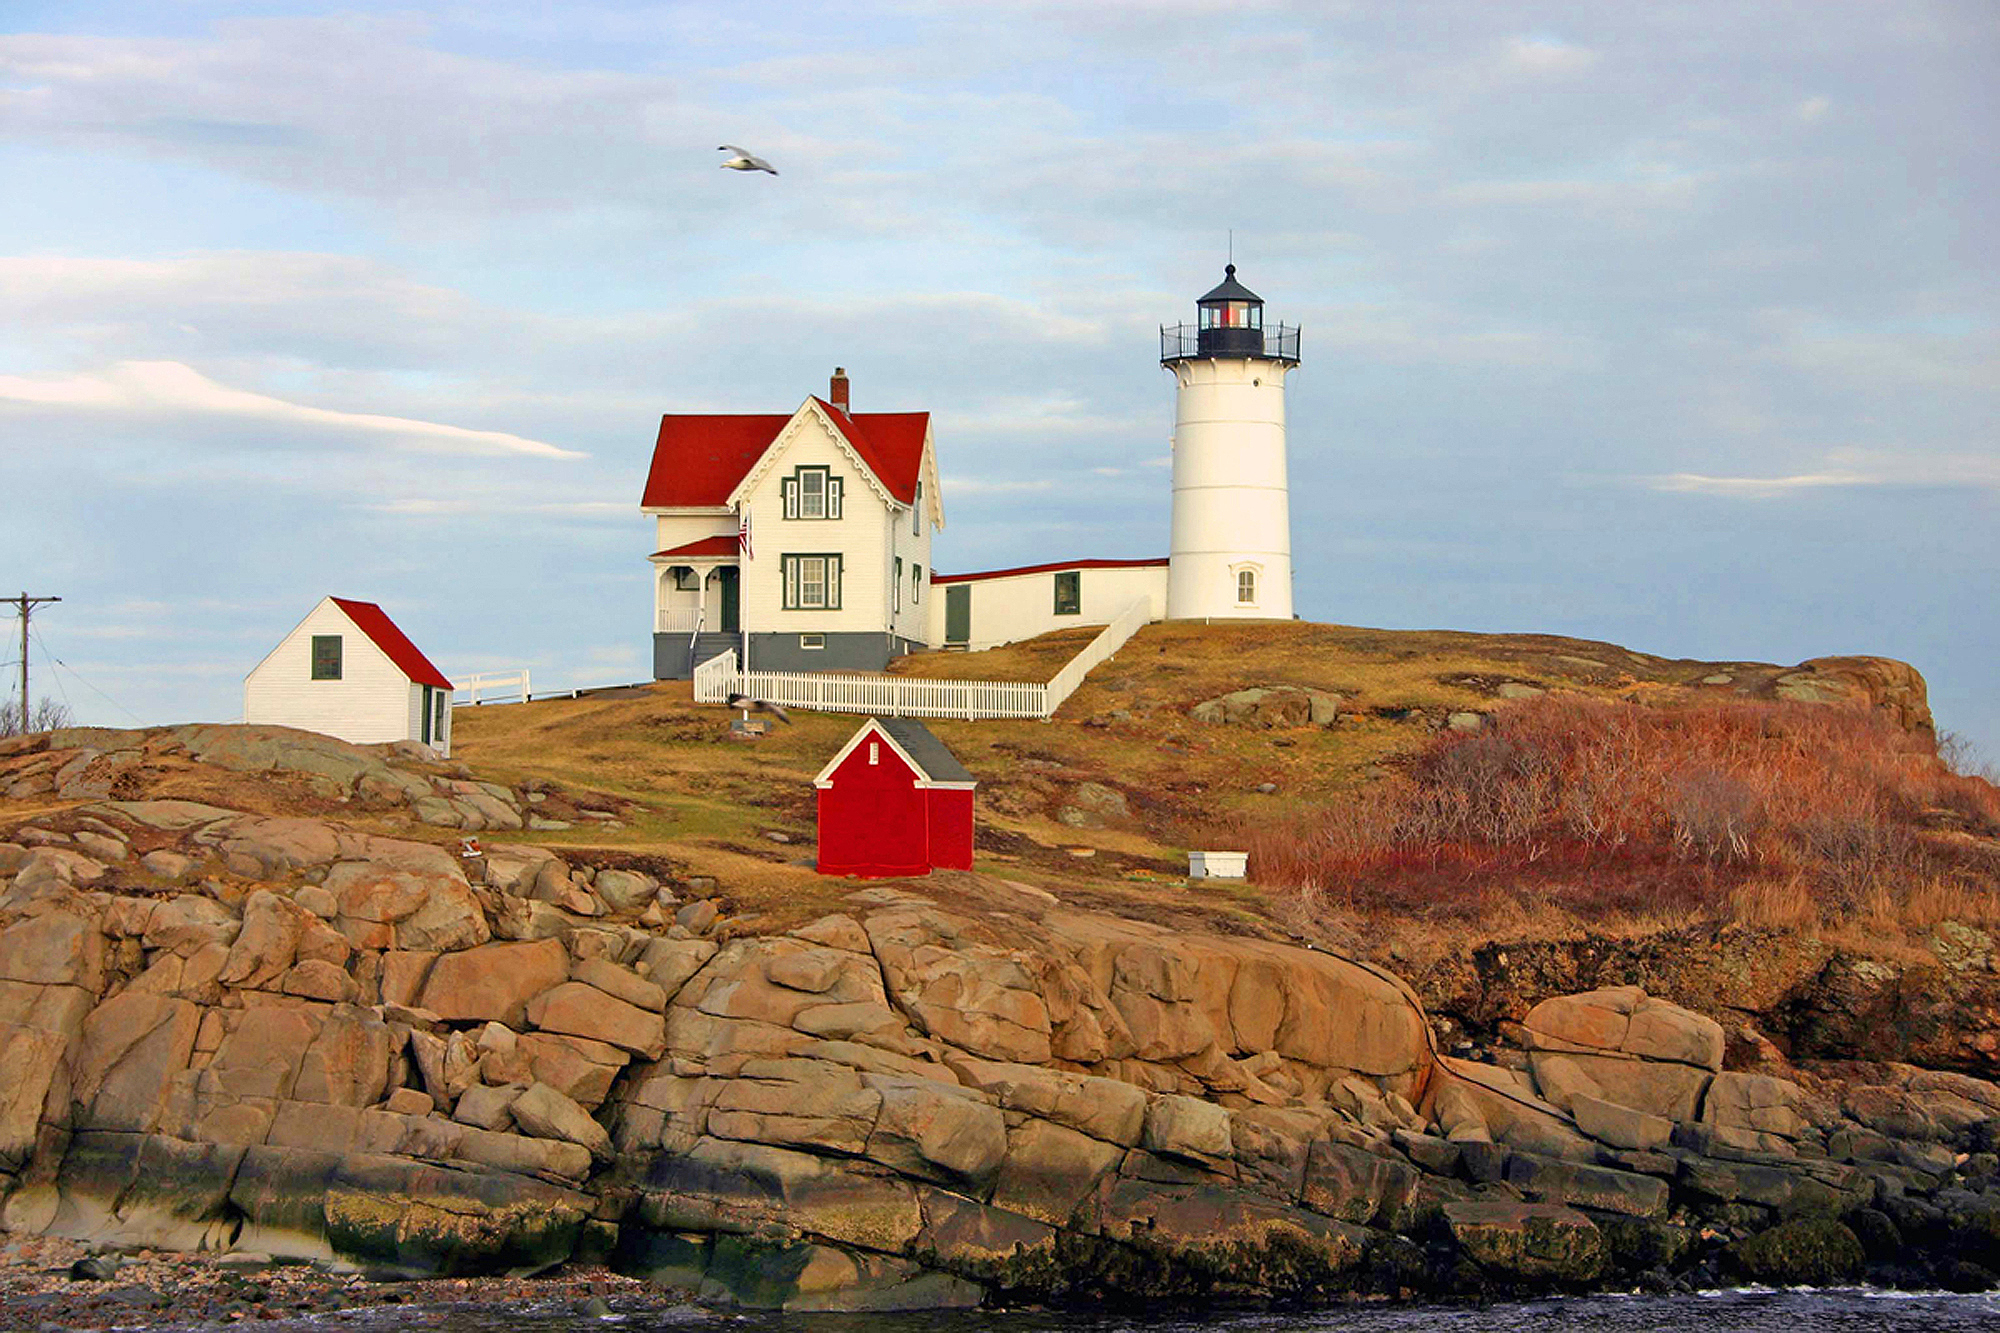 15 Barry_Greff_Nubble_Ocean_Views.jpg